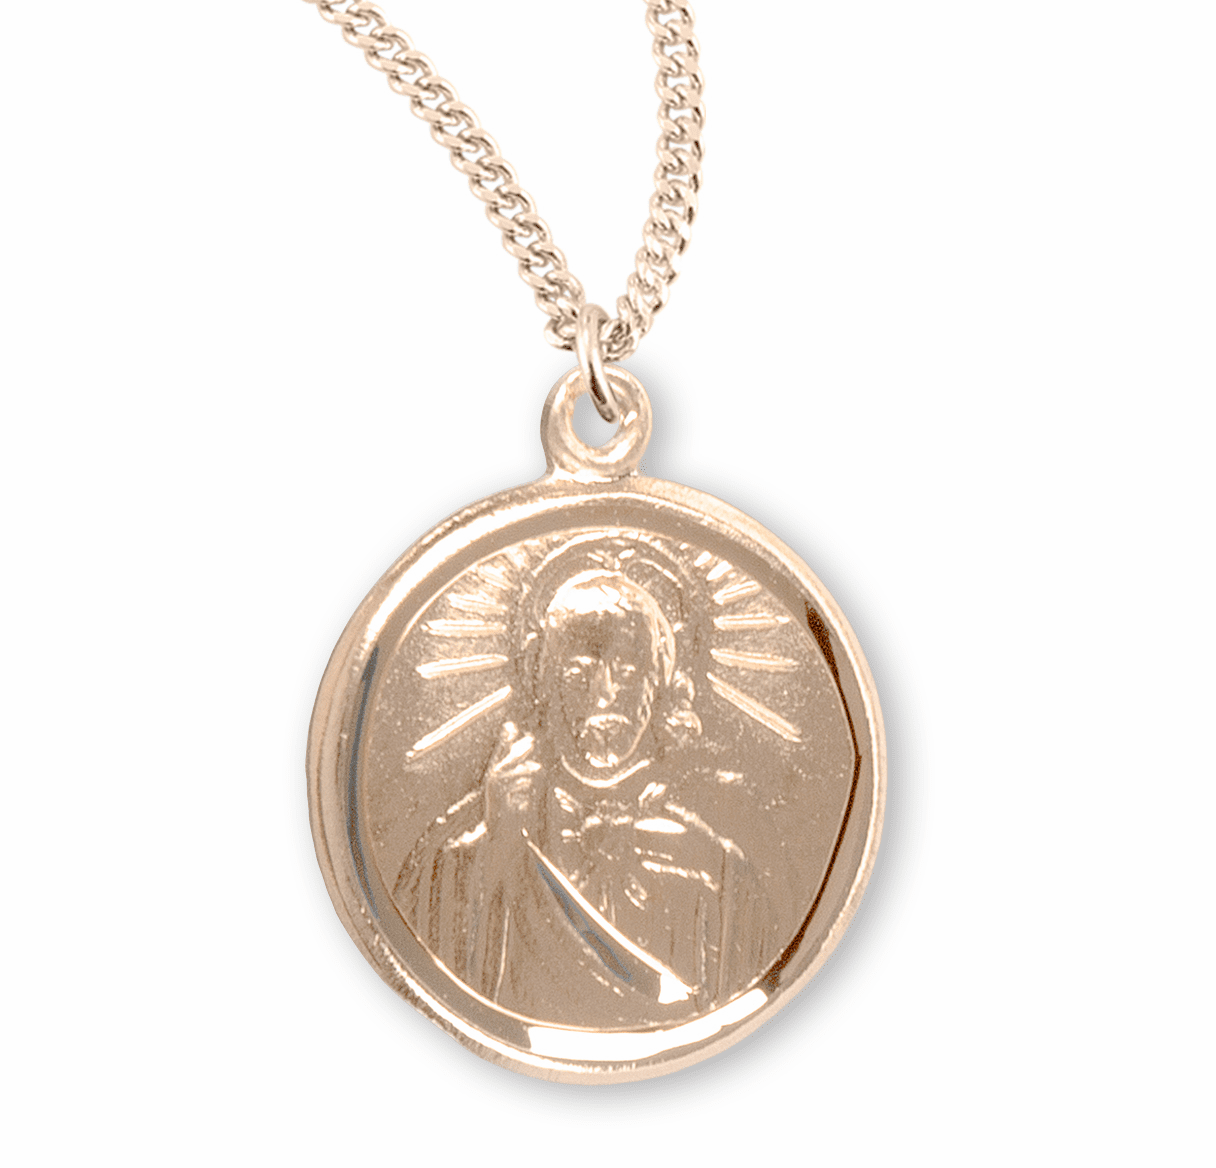 HMH Religious Small Round Scapular Medal Necklace